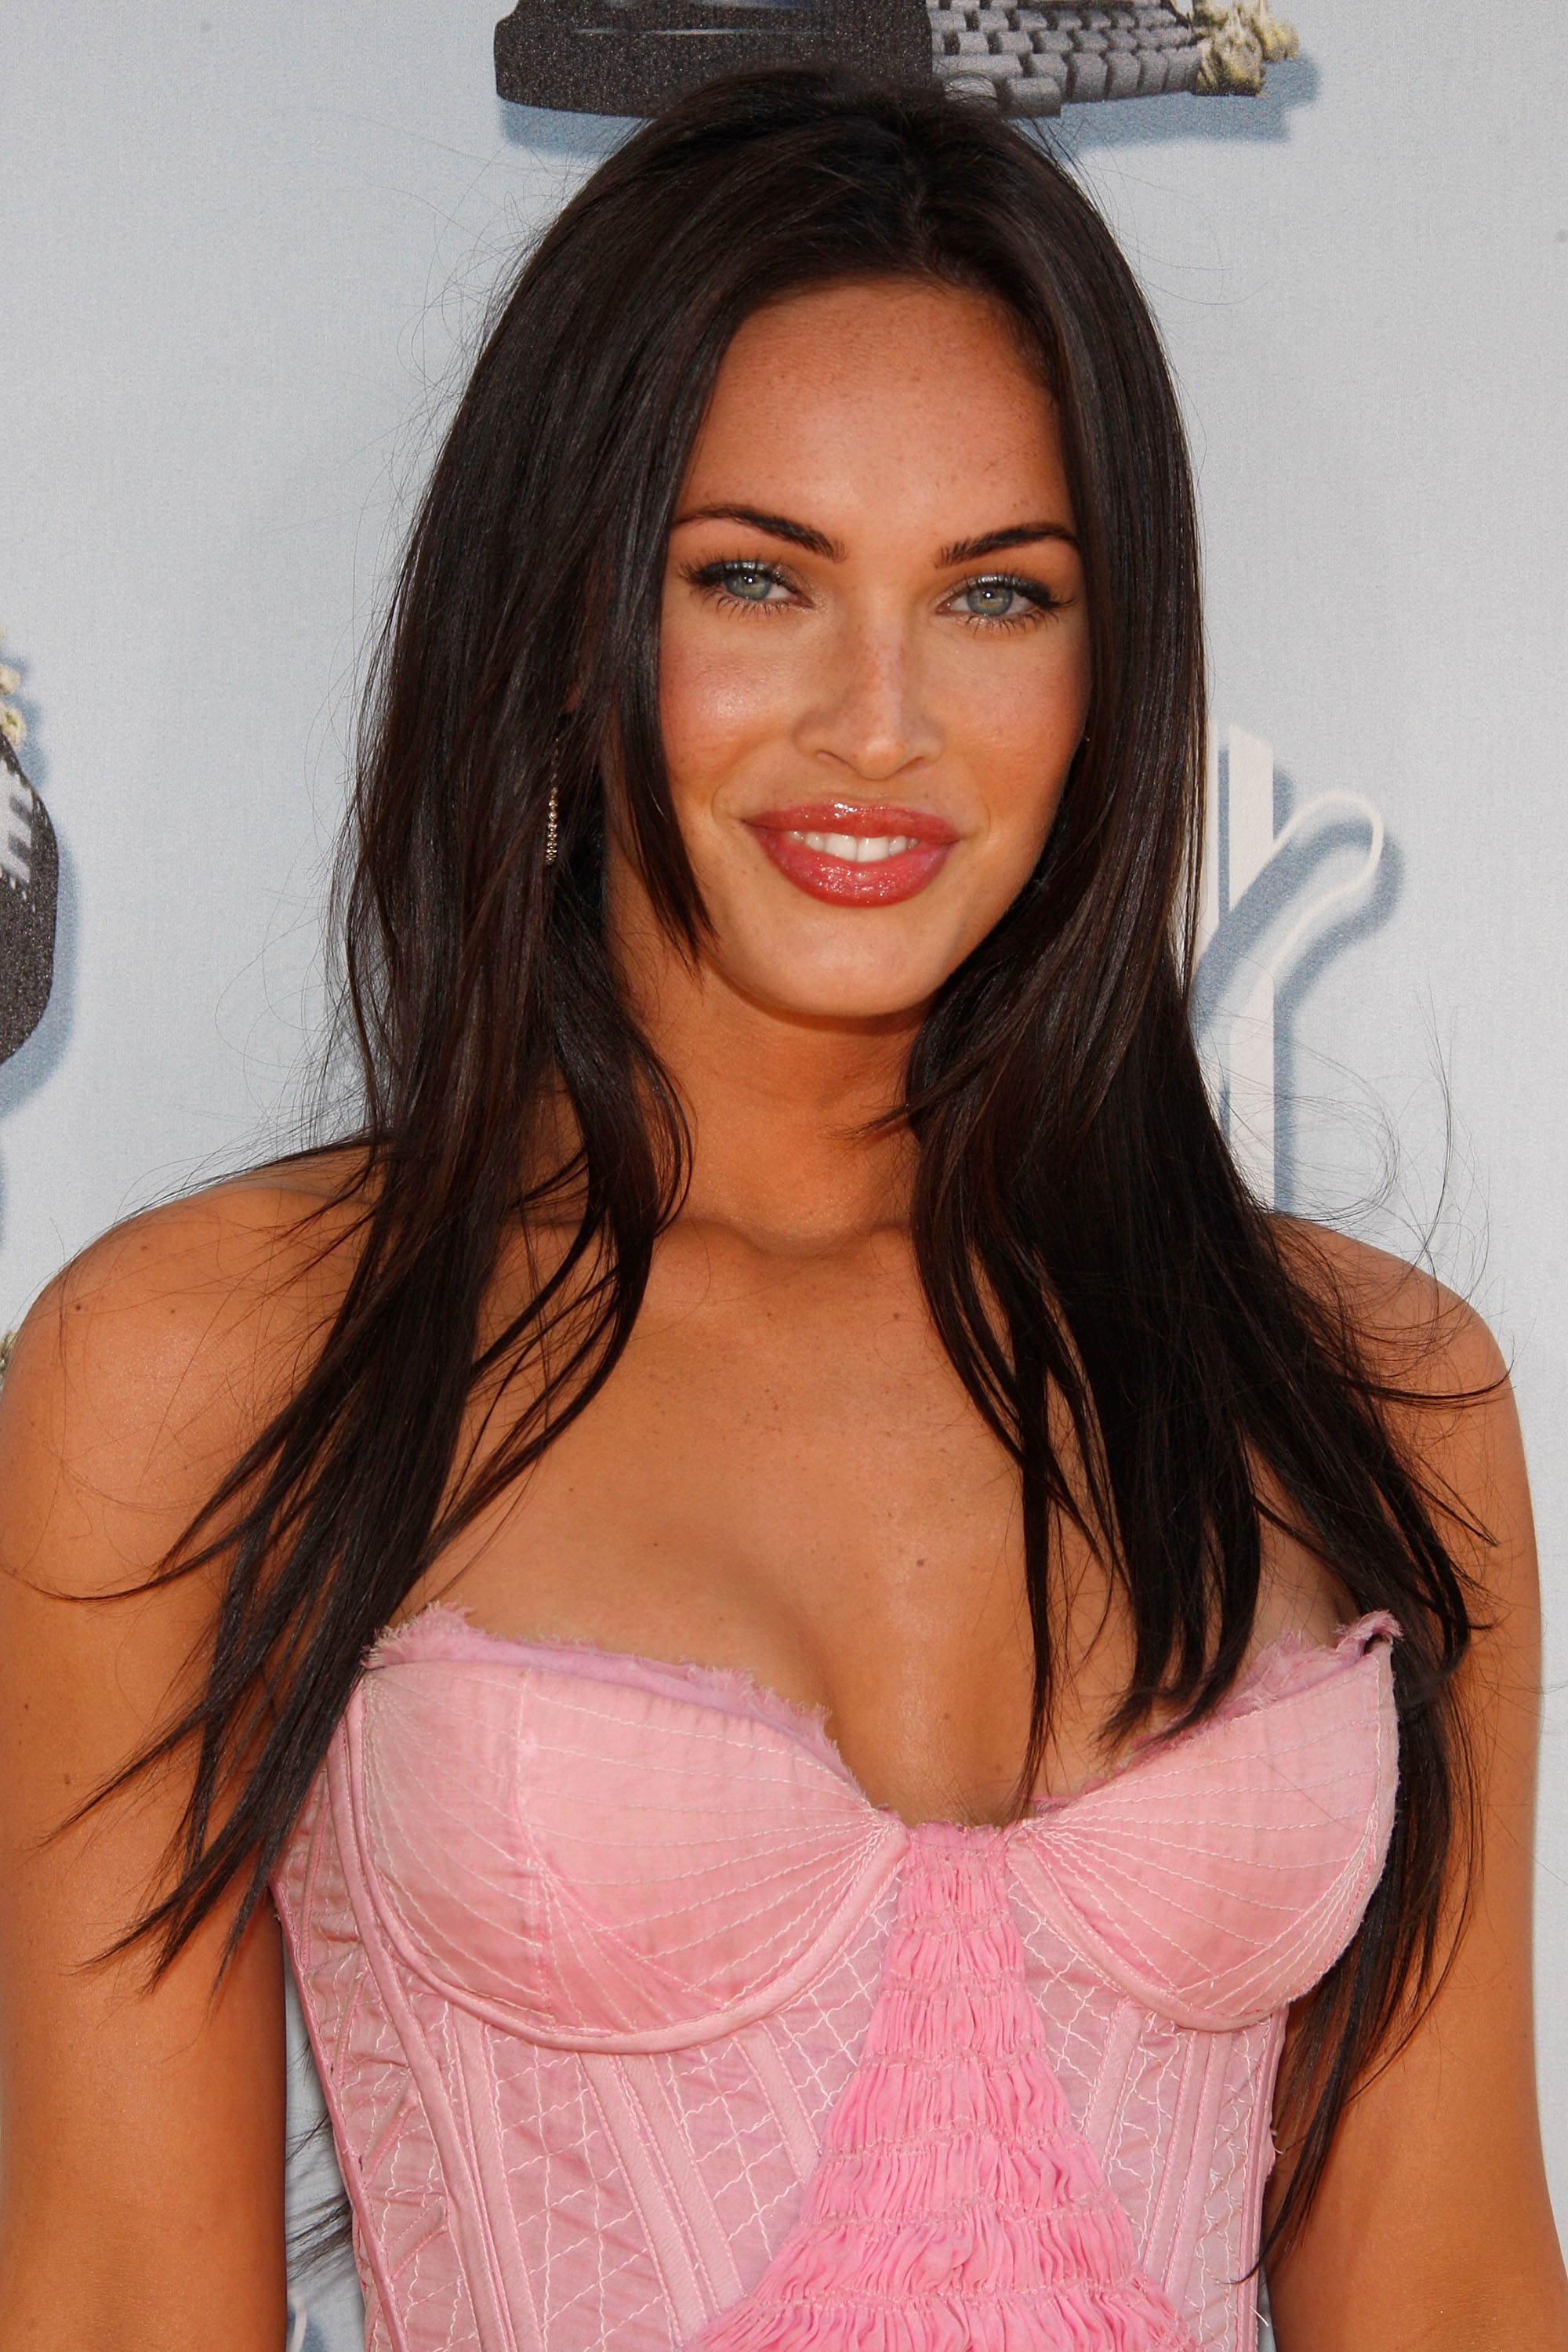 Megan Fox photo #60409